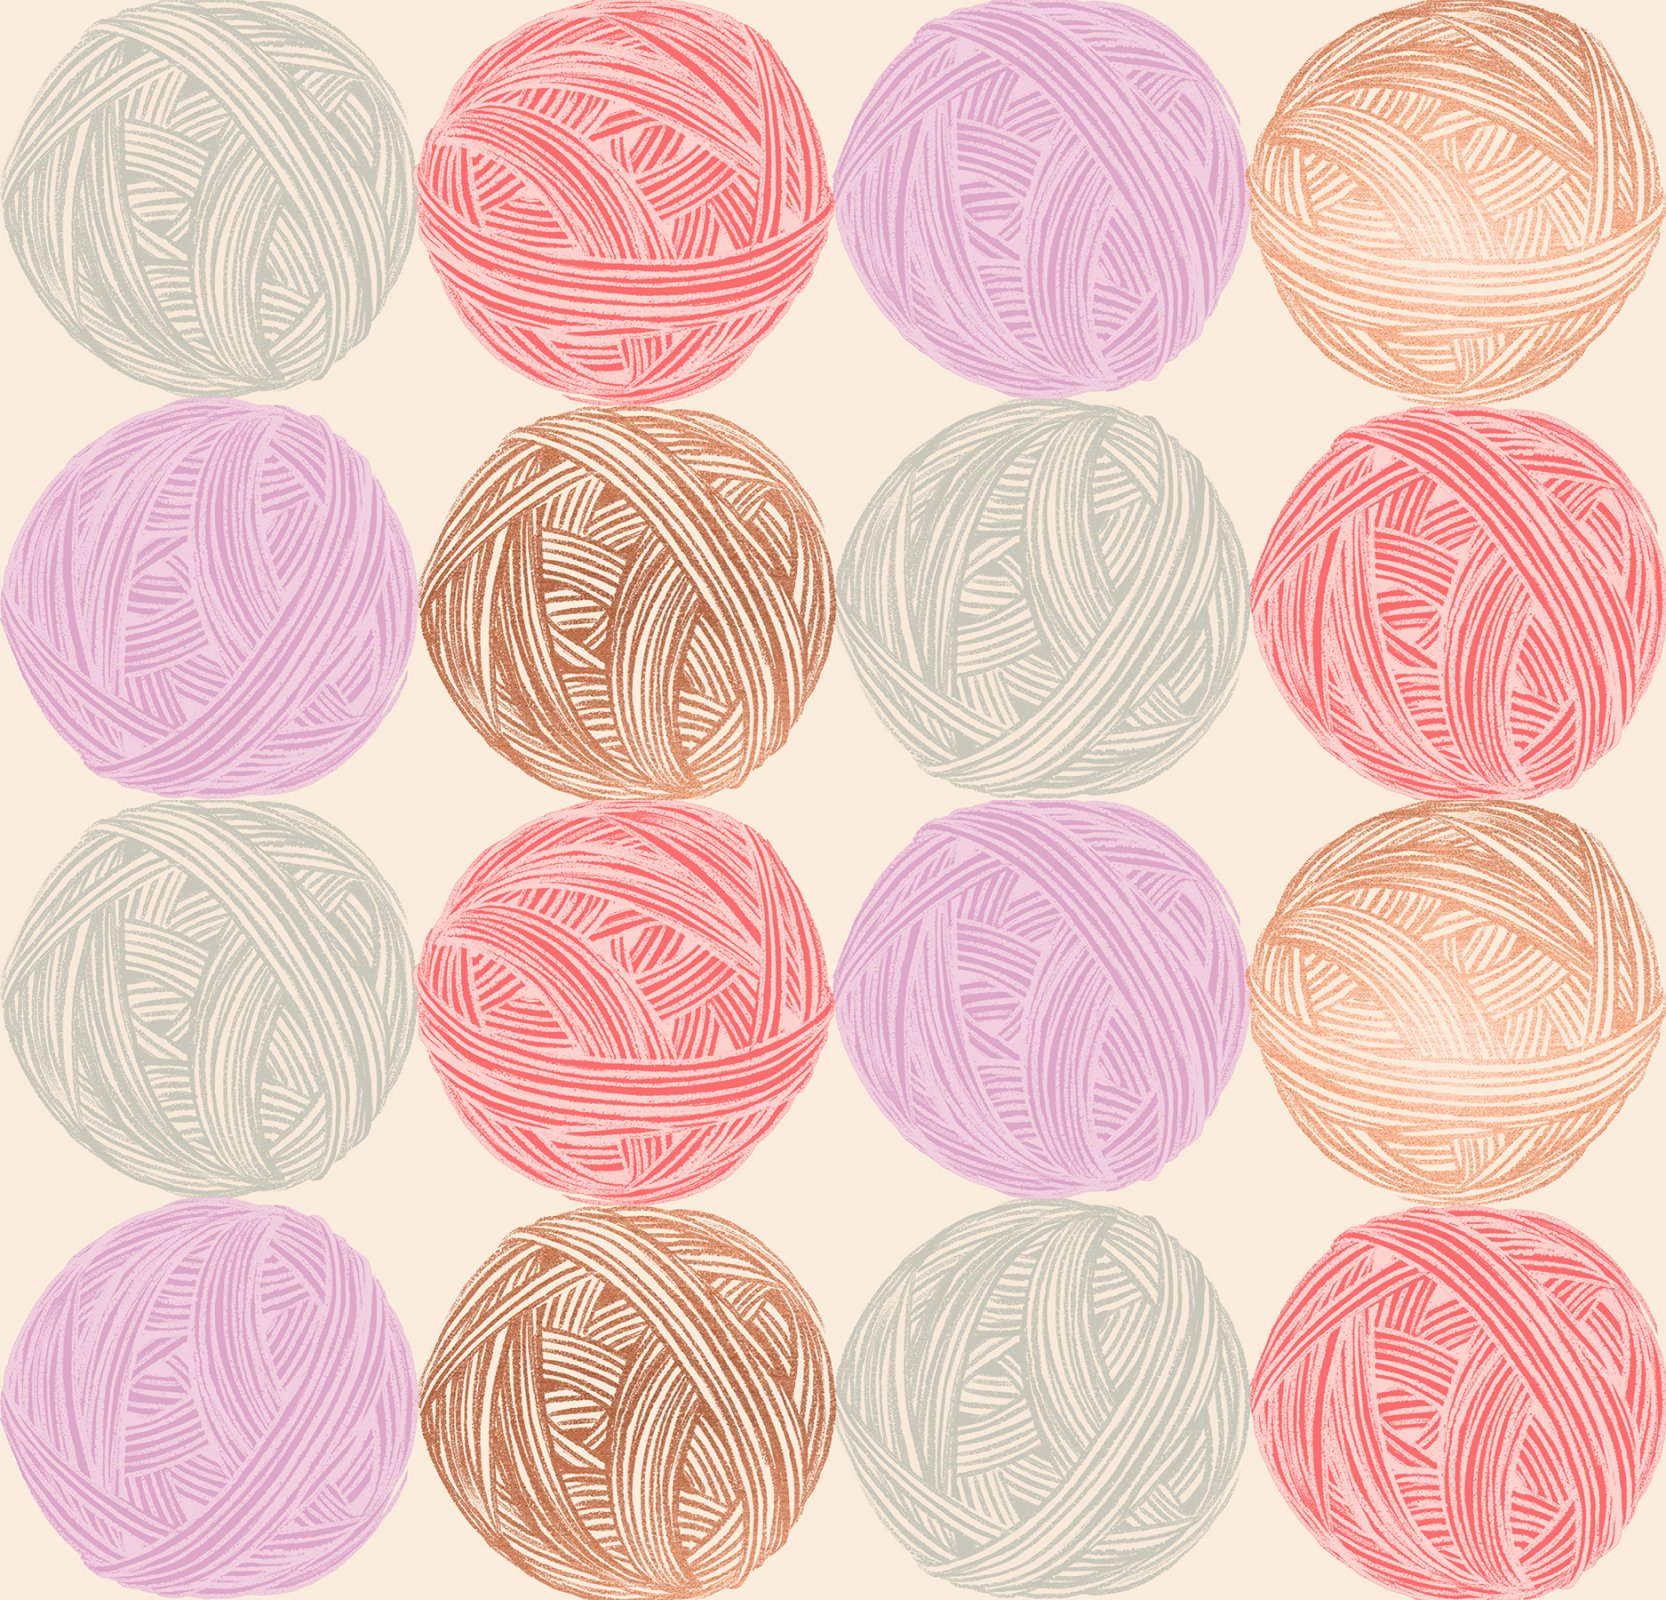 Ruby Star Society Purl Cotton/Linen Canvas - Wound Up - Natural Metallic